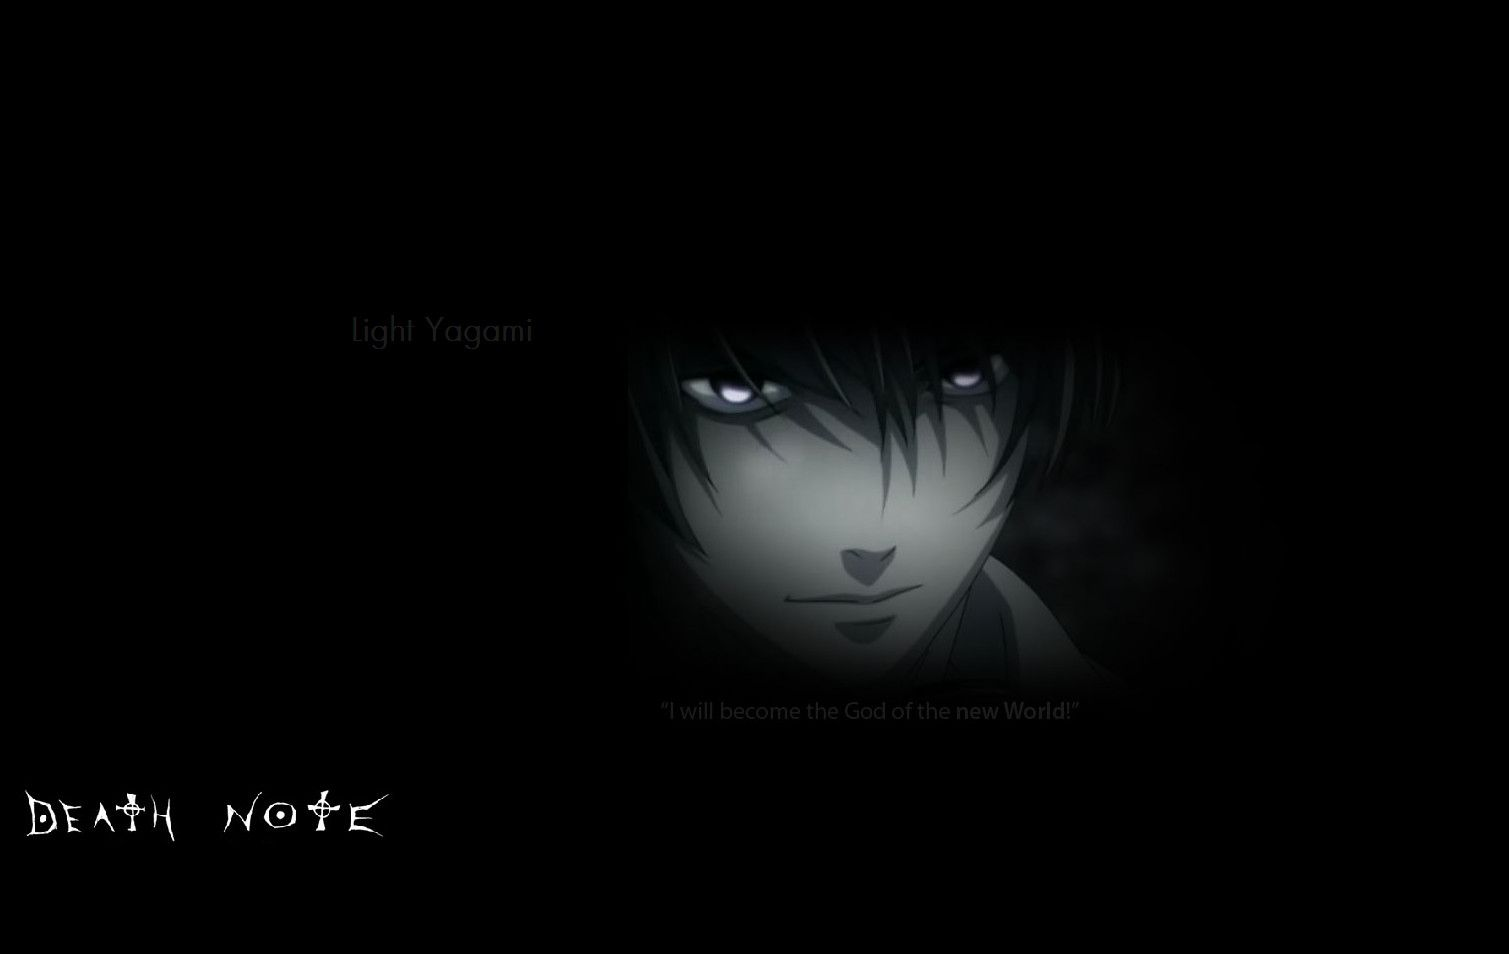 Light Death Note Wallpapers Top Free Light Death Note